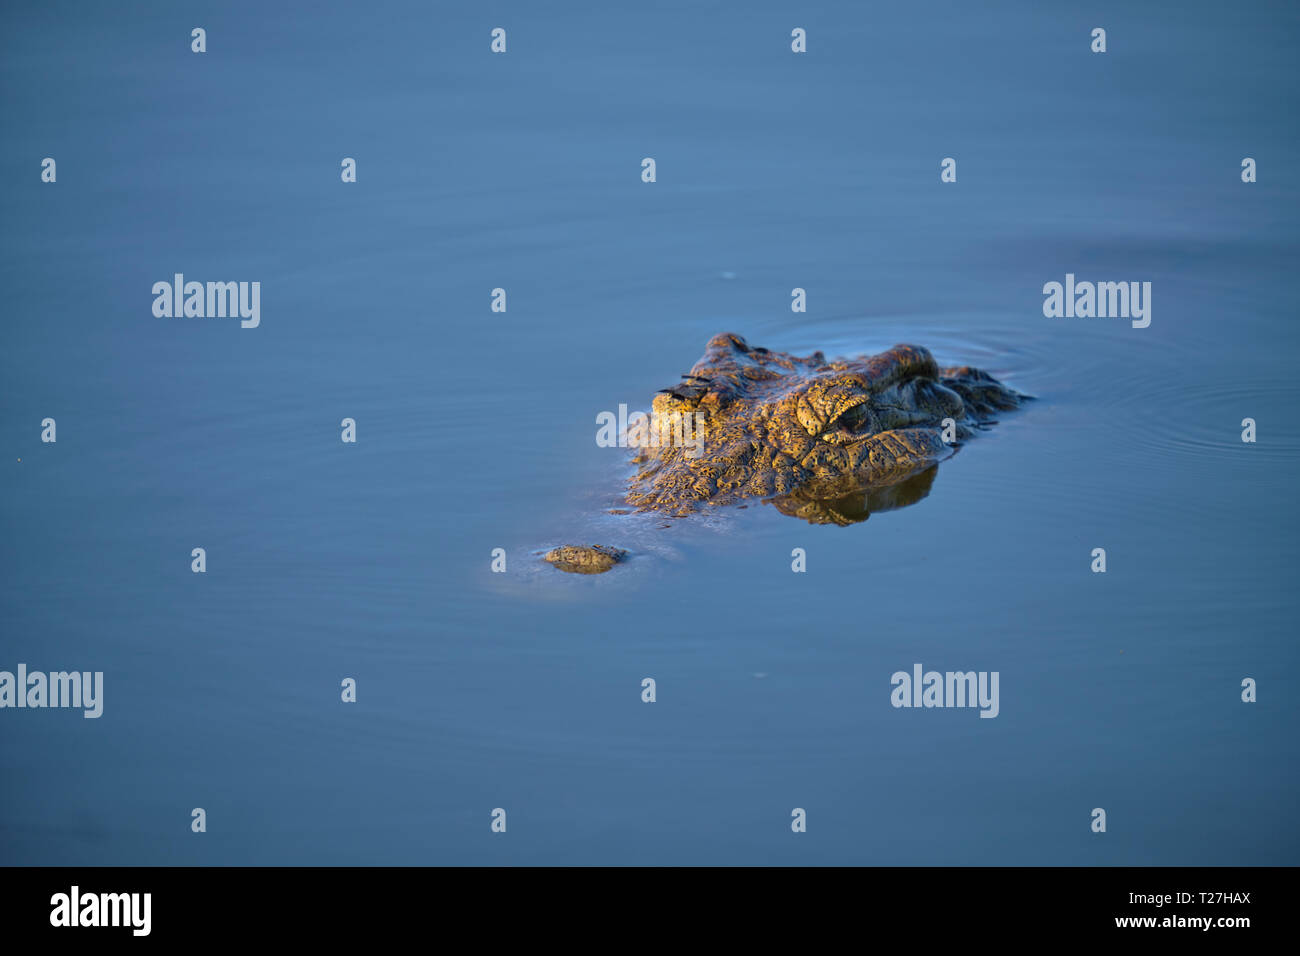 Eyes of crocodile sticking out on flat water in early morning light. Stock Photo